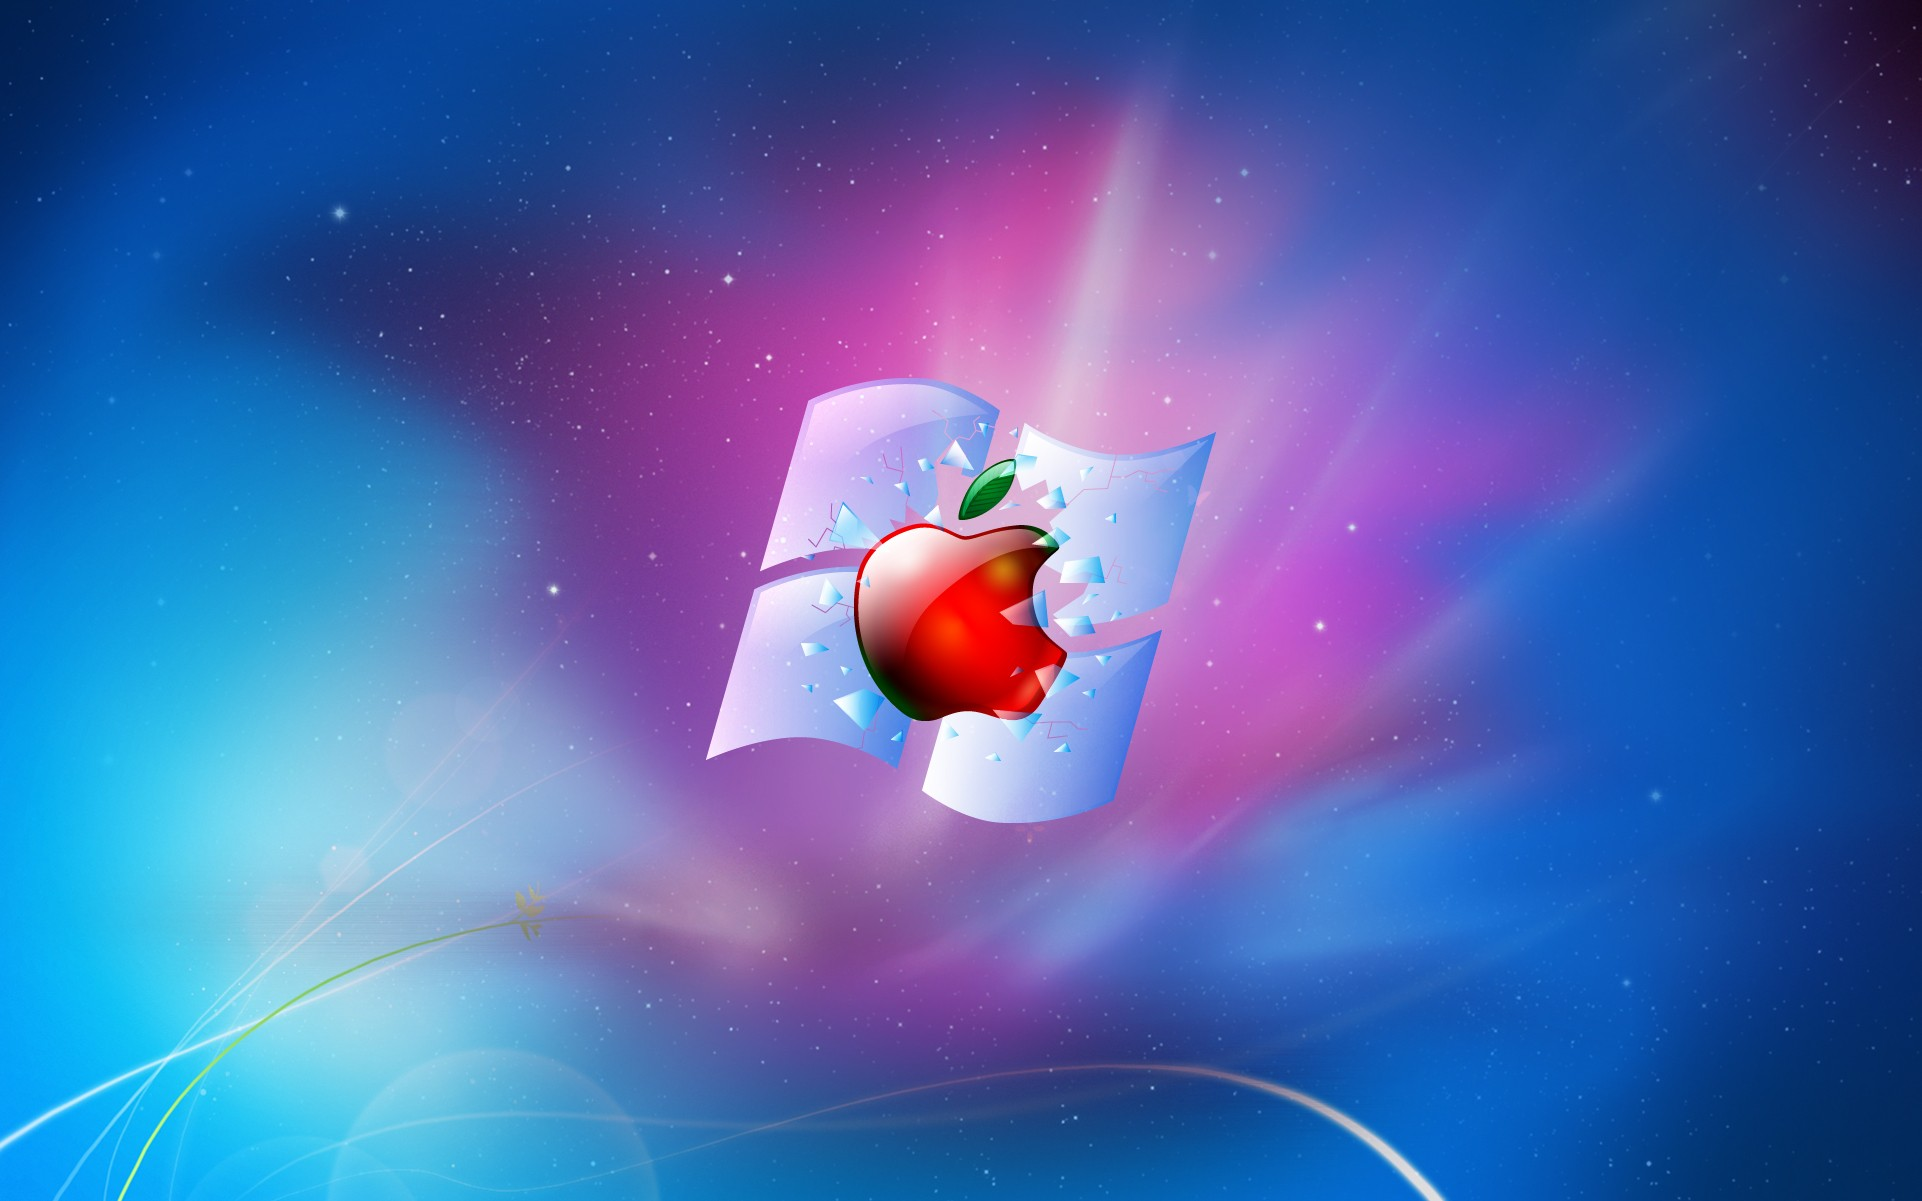 apple computer wallpaper,operating system,sky,atmosphere,space,animation